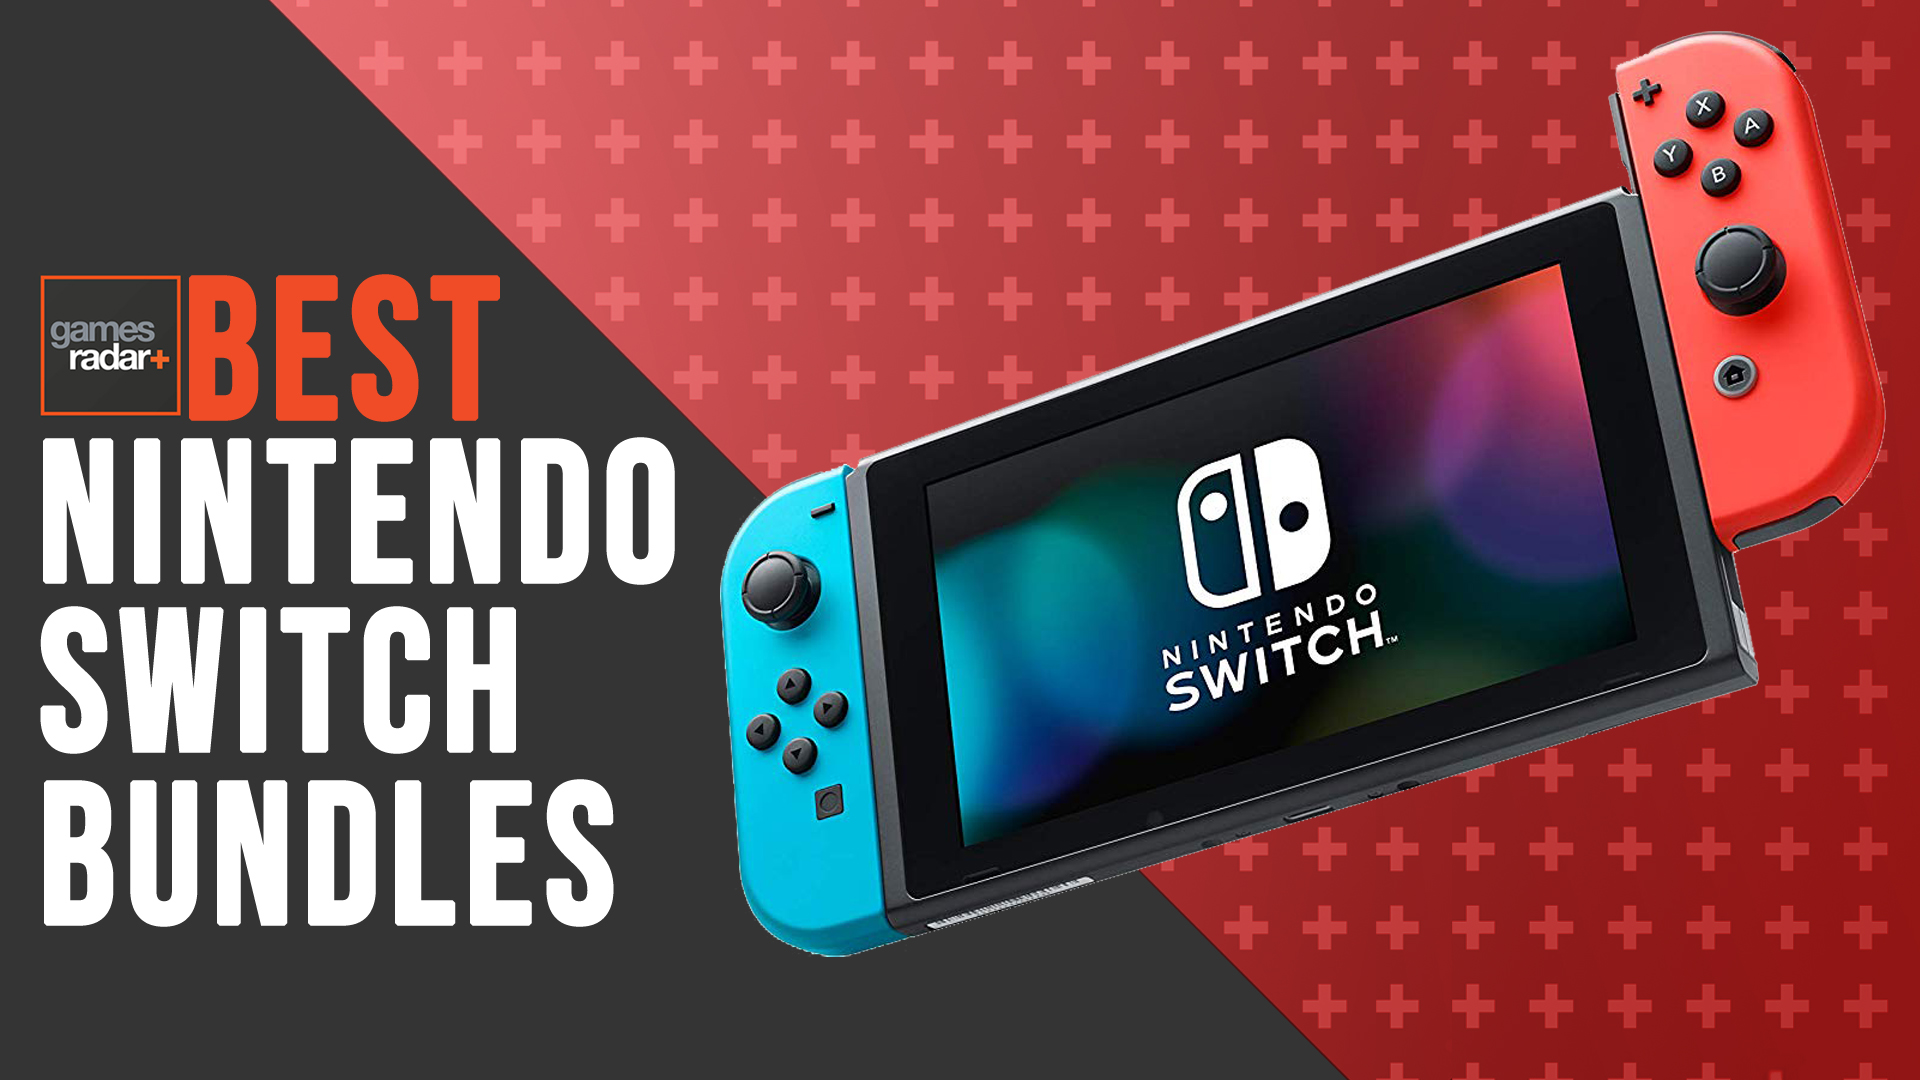 Cheap Nintendo Switch Bundles Latest Deals Prices And Sales